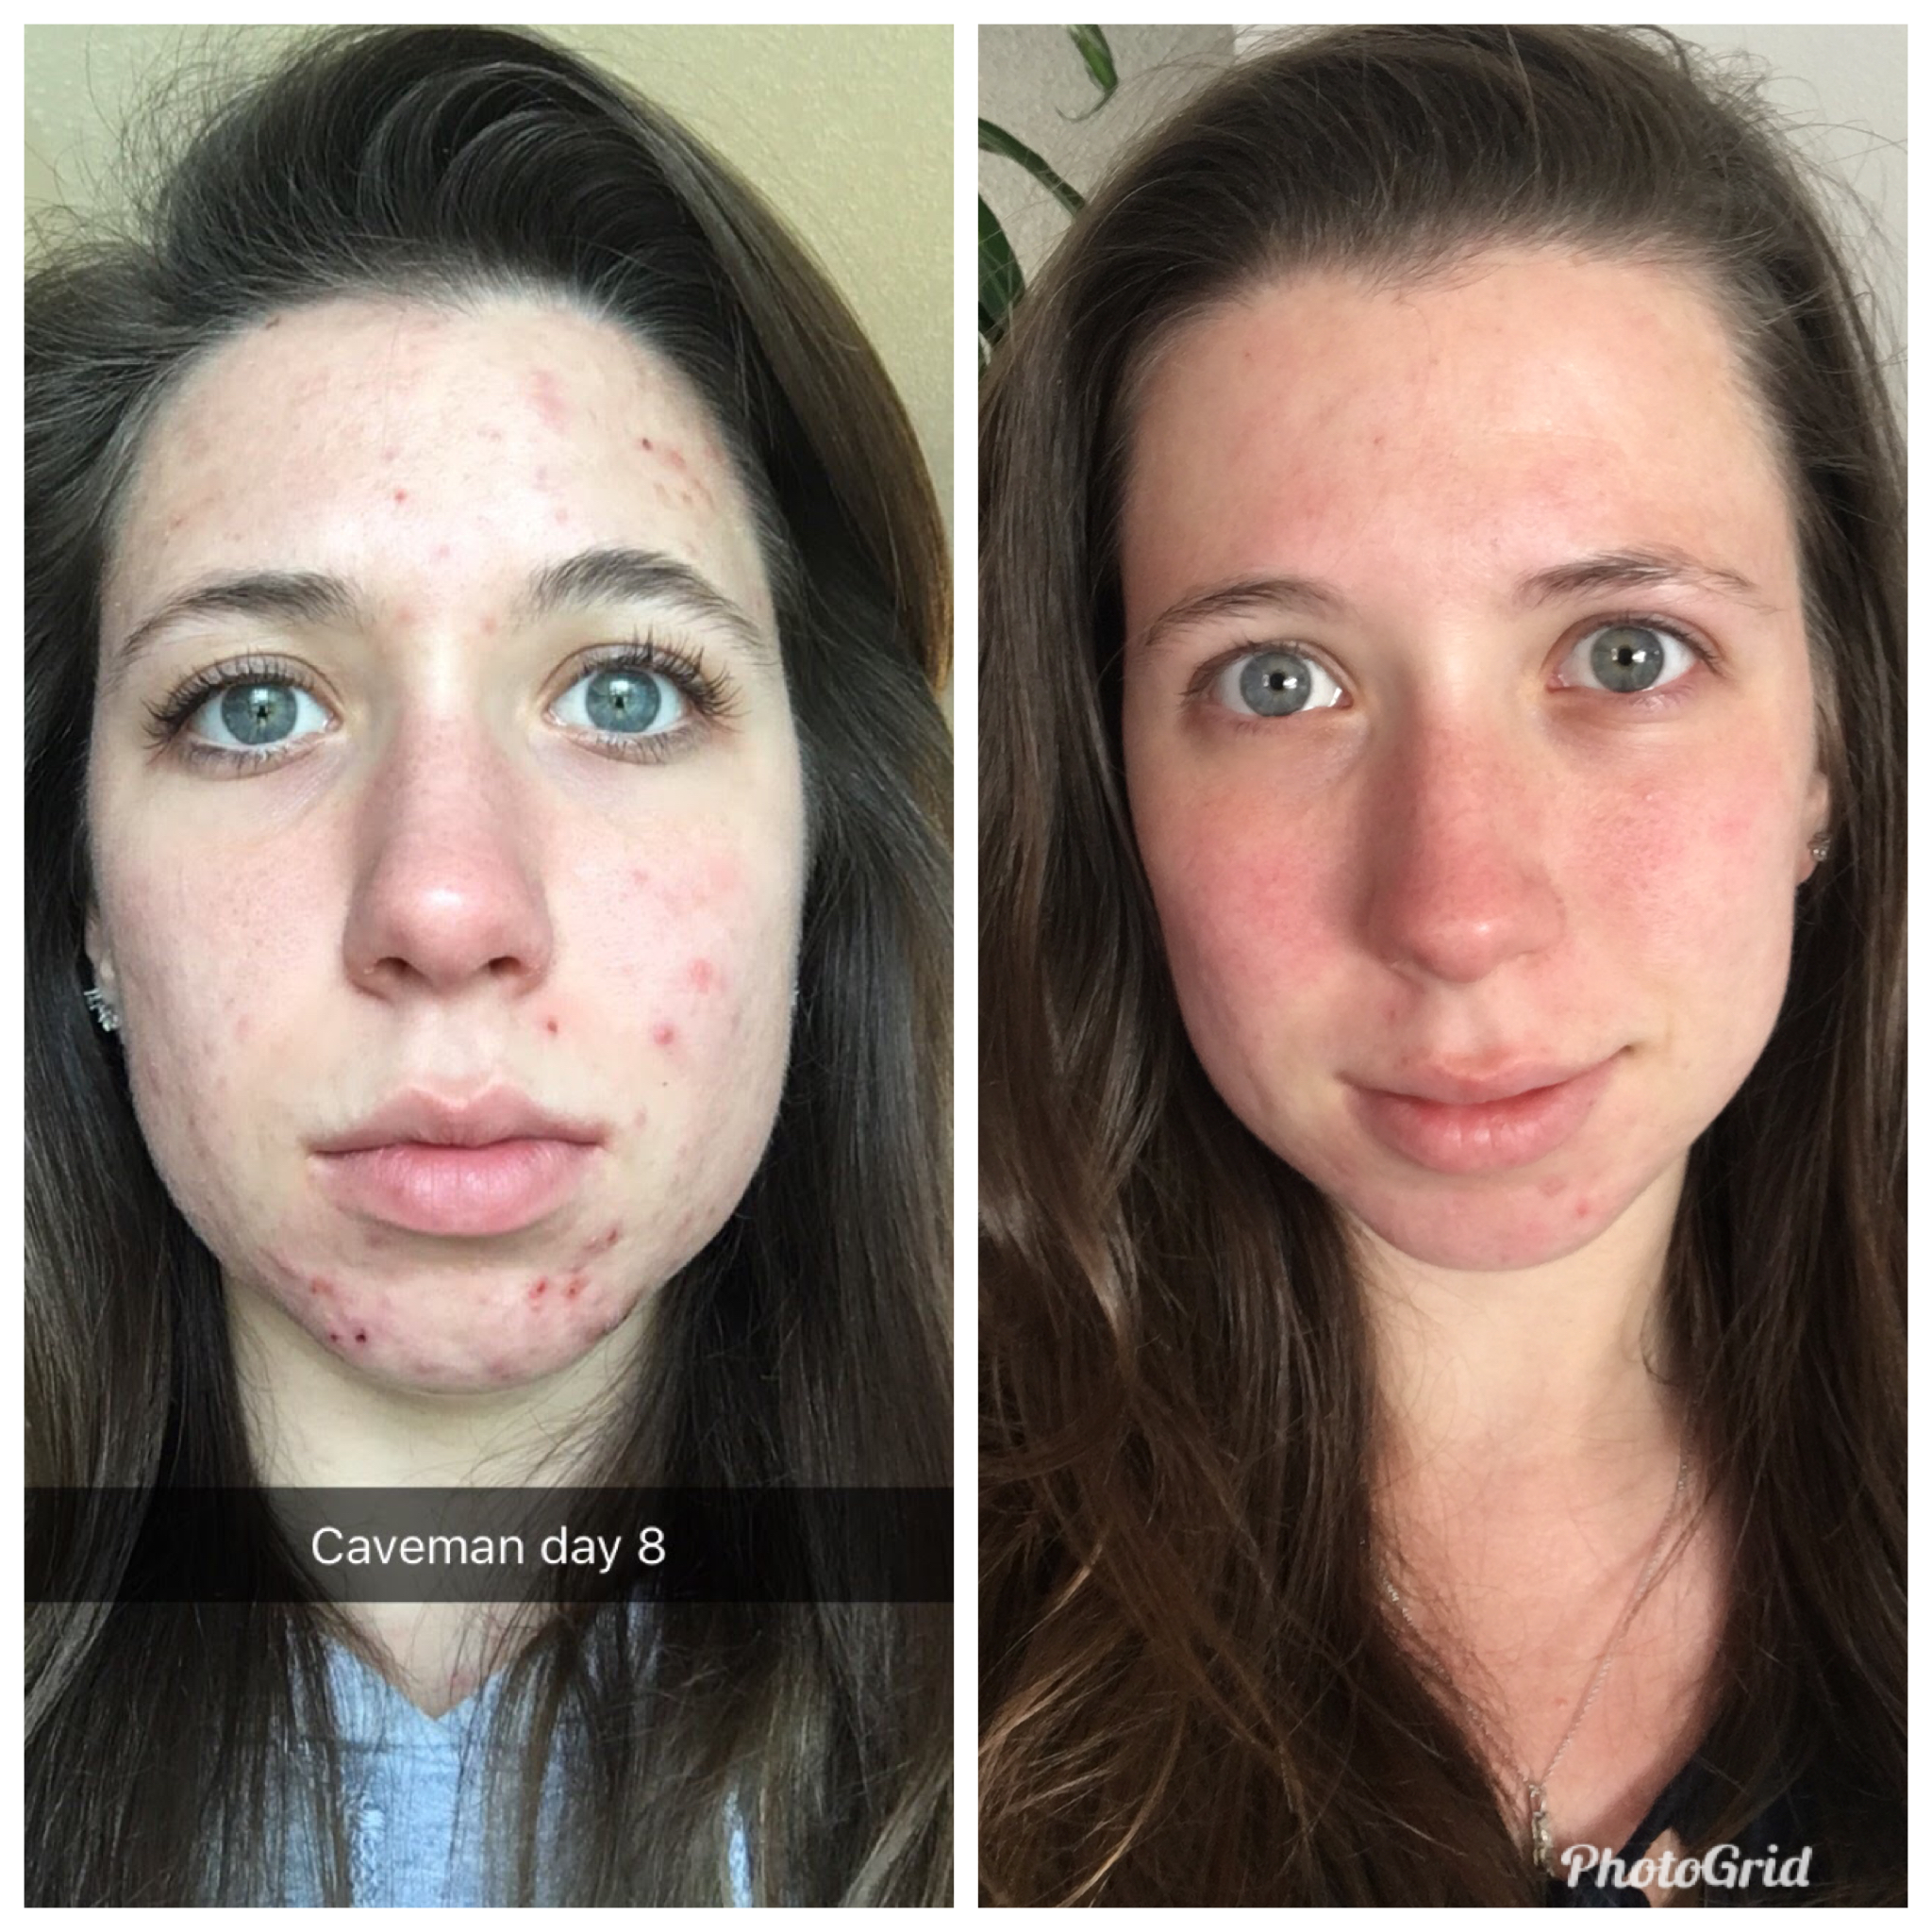 Left: February 2017; Right: May 2018 Both pictures are without makeup (I'm wearing only mascara in the left picture) to show a fair comparison!